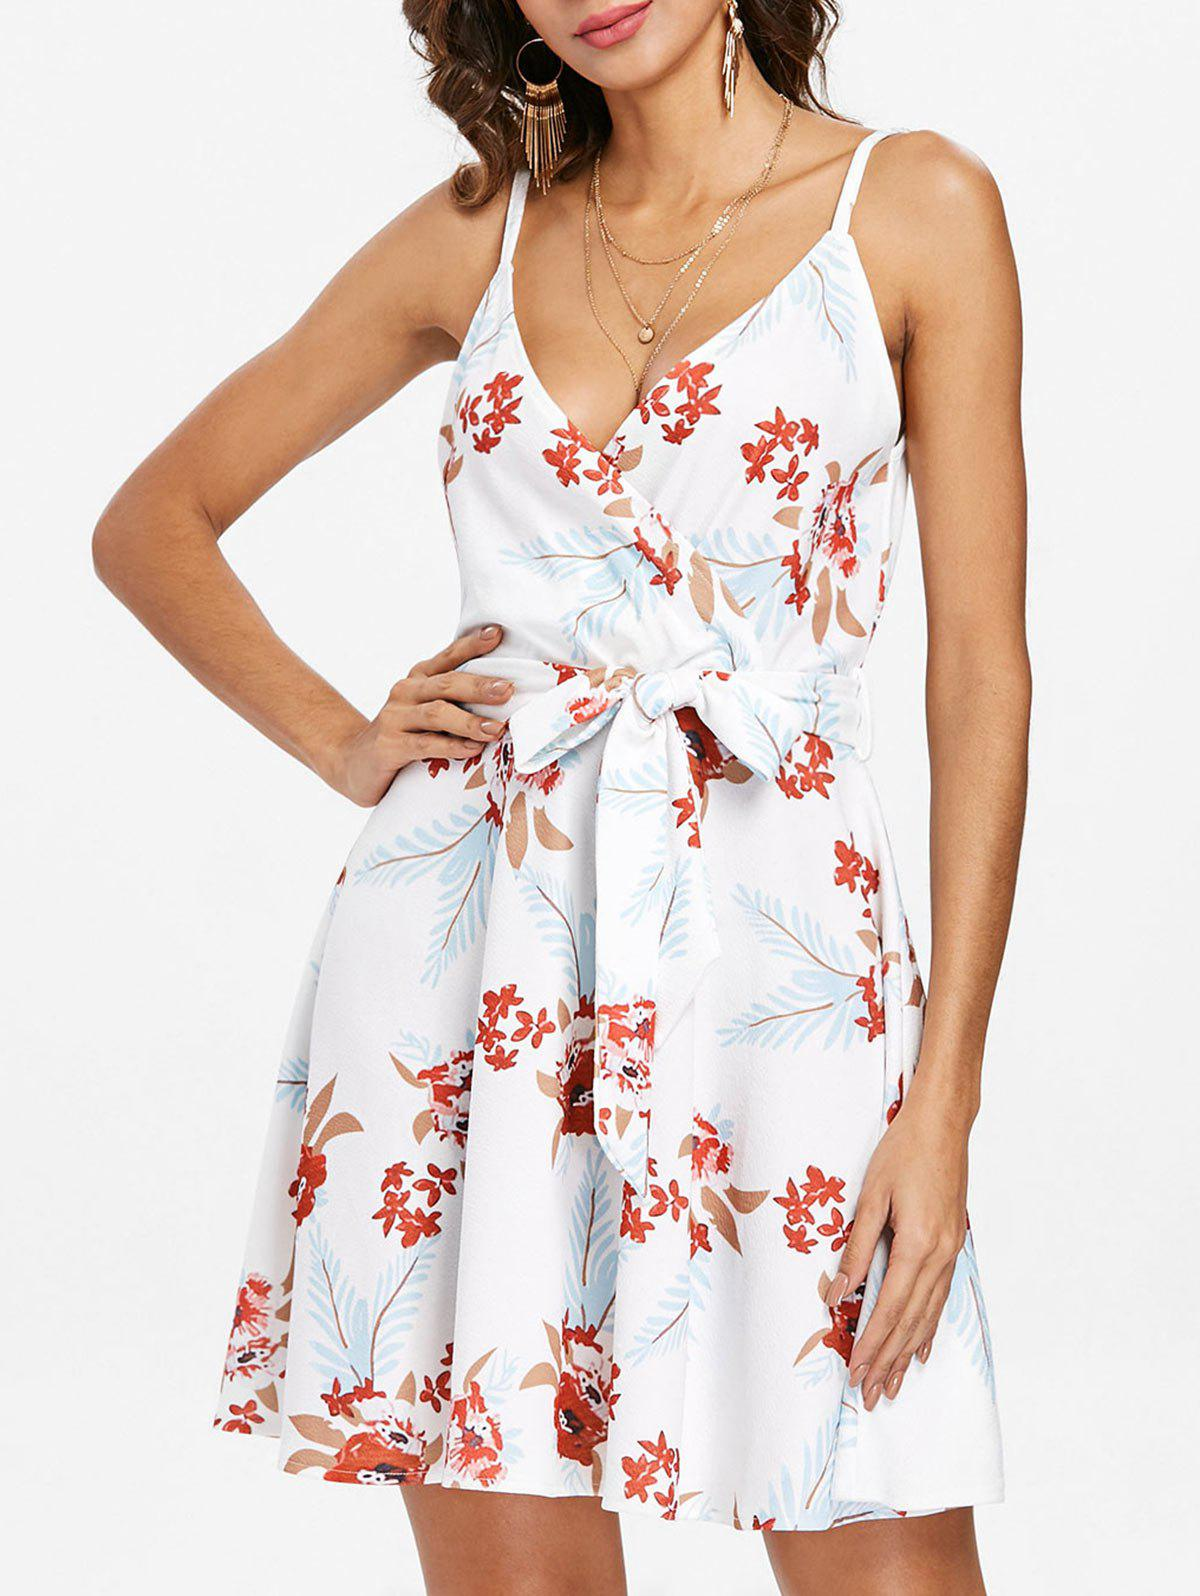 Hot Floral Casual Sleeveless Dress